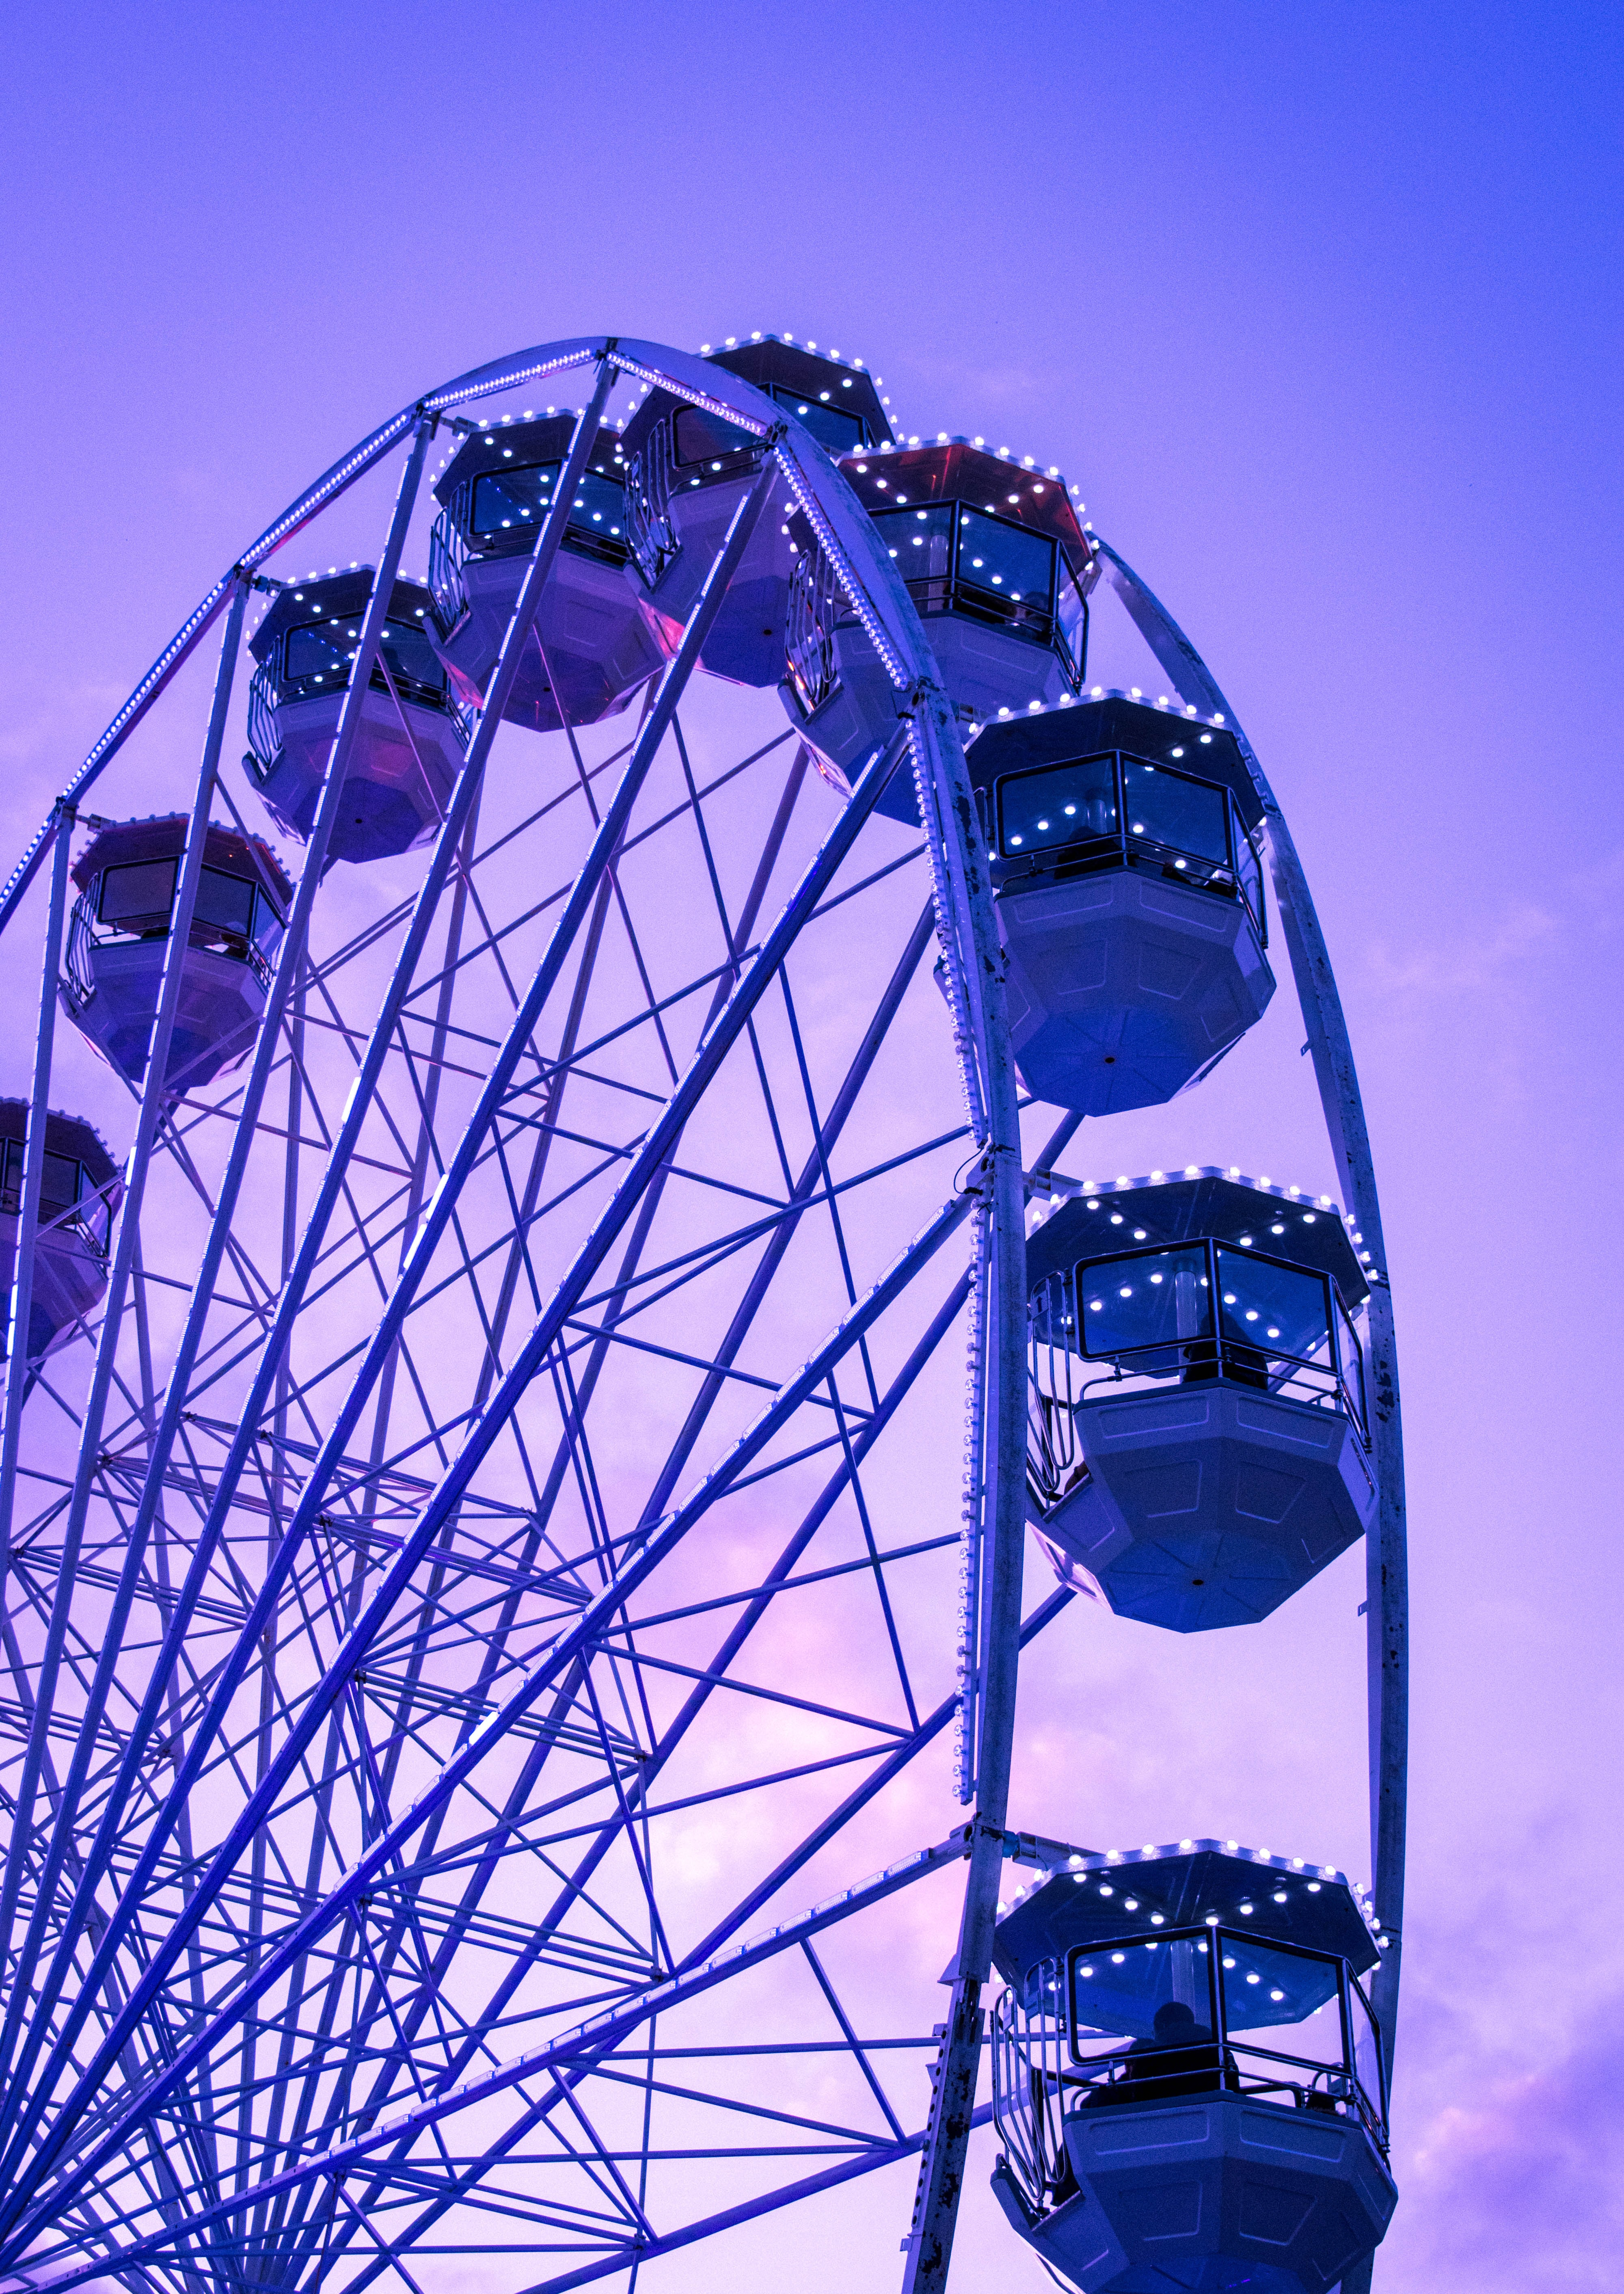 151890 Screensavers and Wallpapers Purple for phone. Download Violet, Miscellanea, Miscellaneous, Design, Construction, Purple, Ferris Wheel pictures for free